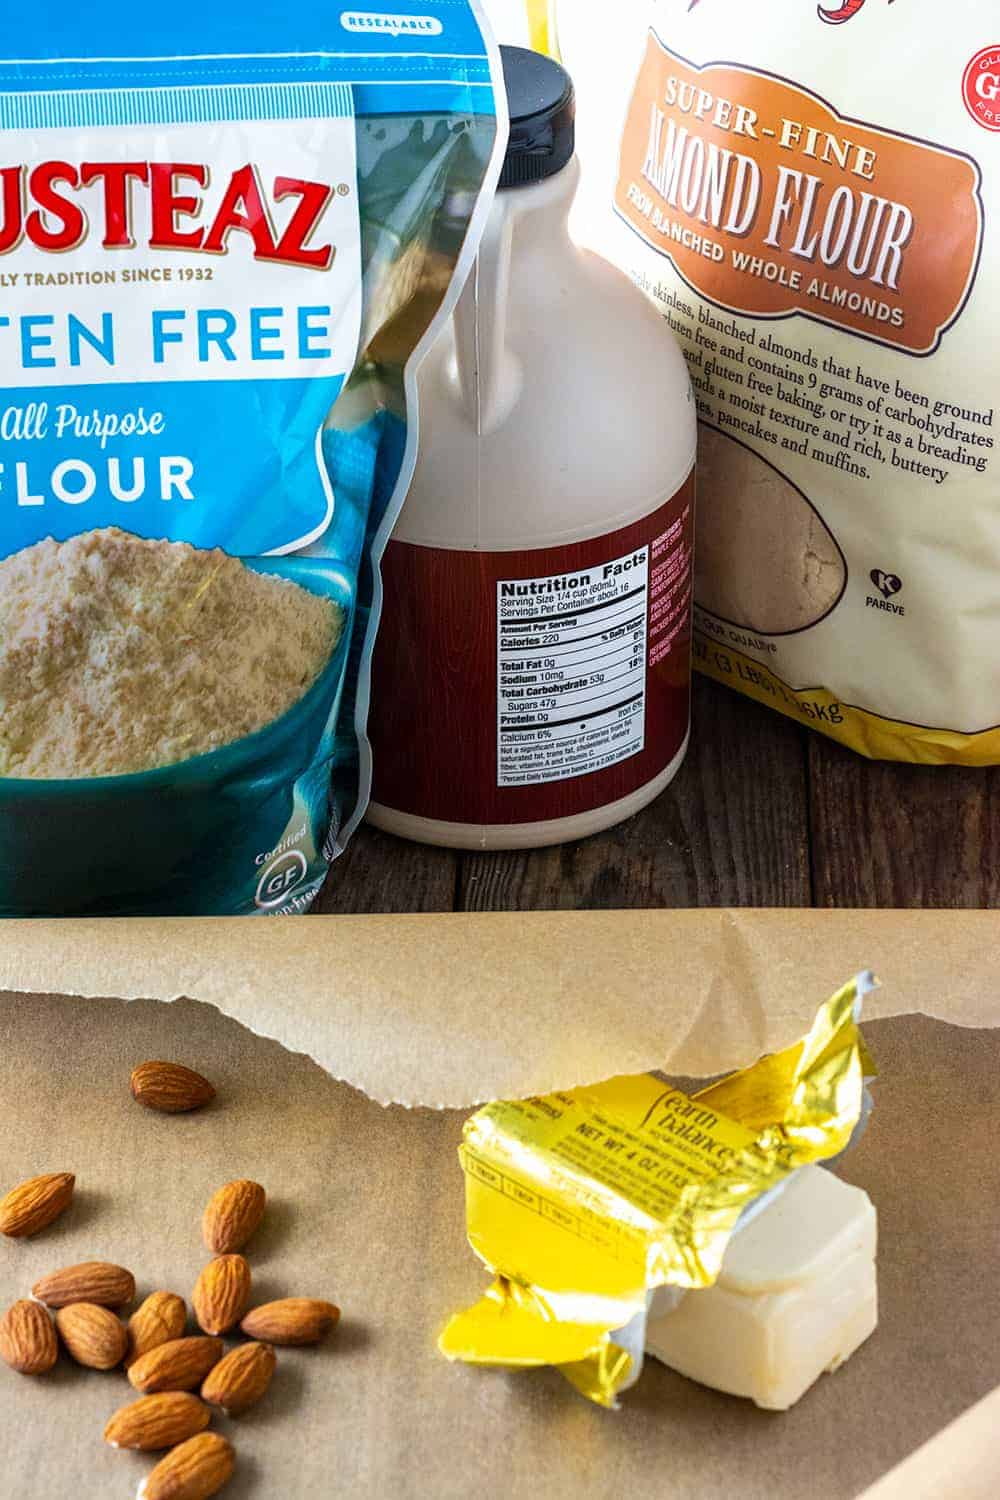 Vegan Gluten-Free Chinese almond cookies ingredients. bag of gluten-free flour, maple syrup bottle, bag of almond flour, raw almonds and Earth balance vegan buttery spread stick.